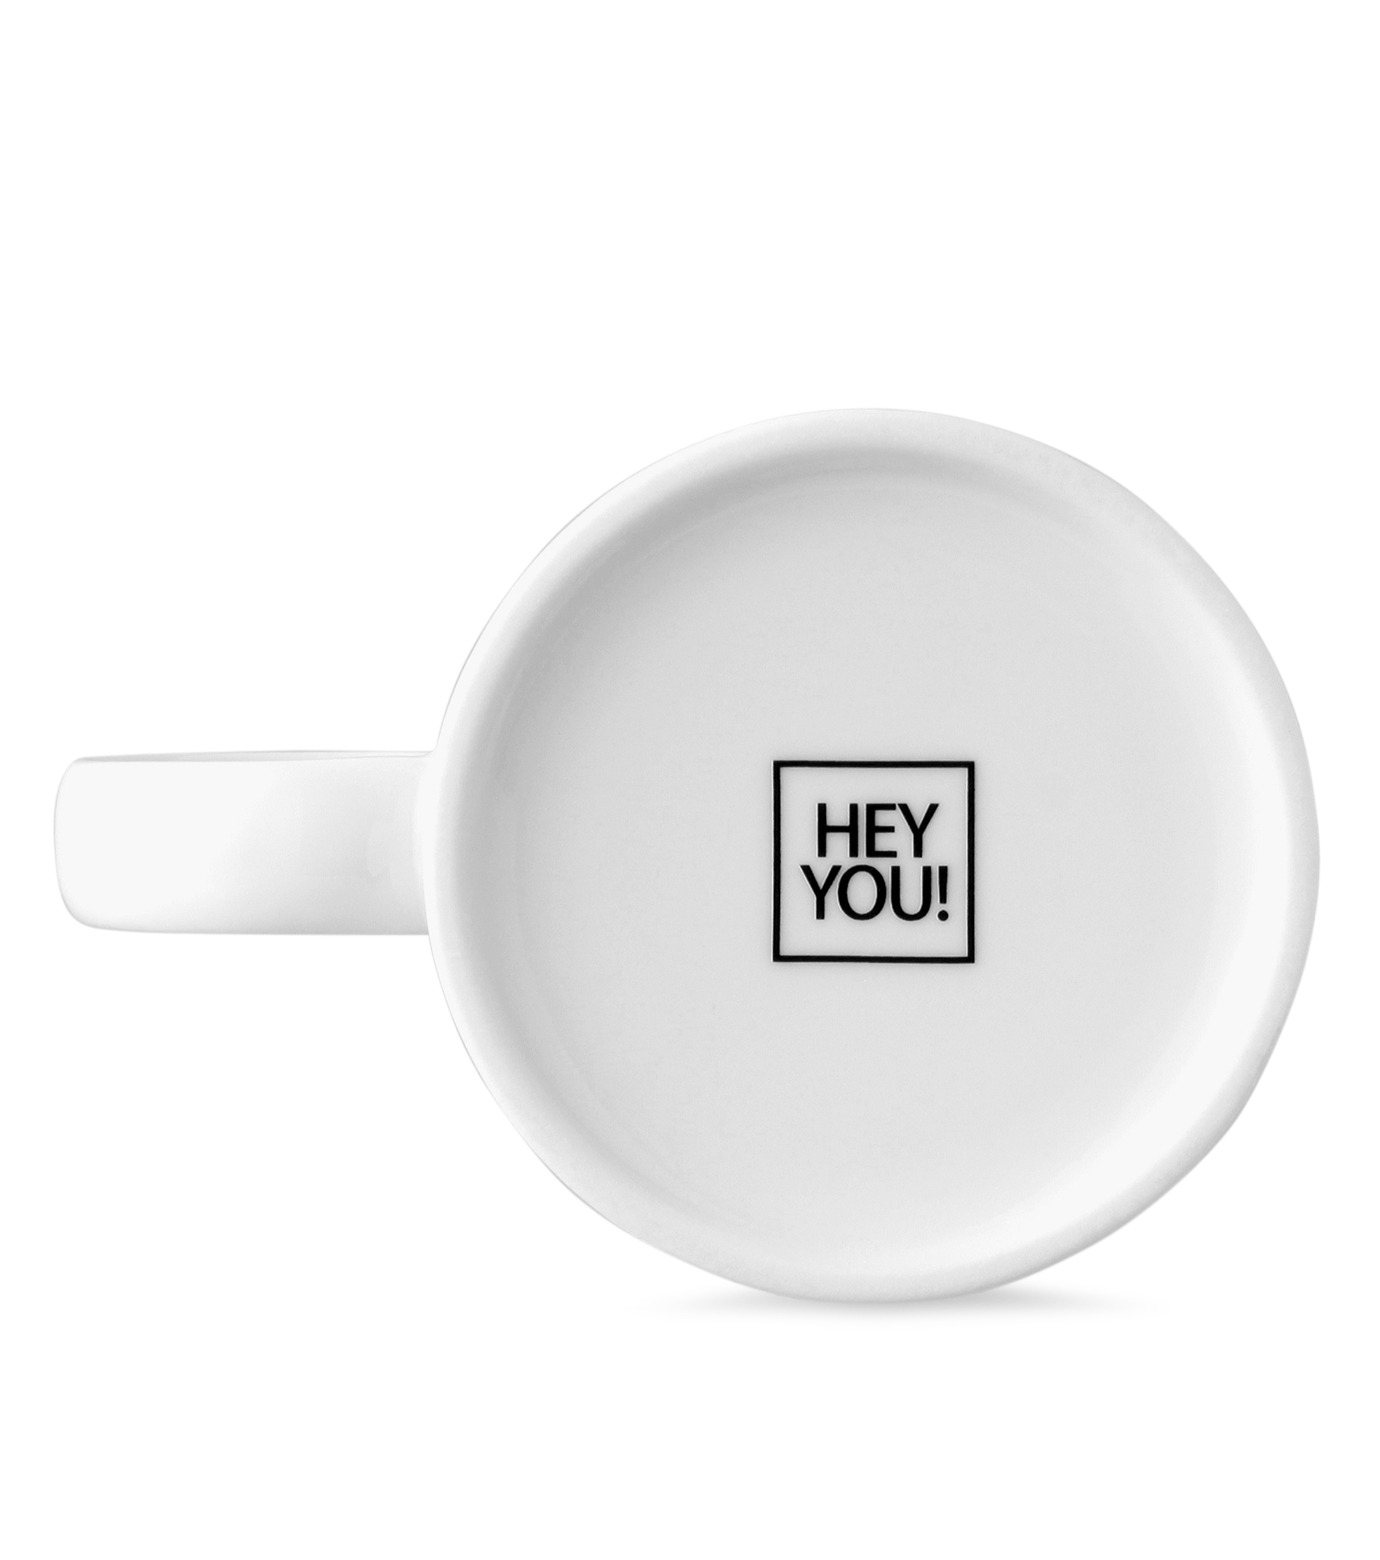 HEY YOU !(ヘイユウ)のBOARD MUG CUP-WHITE(キッチン/kitchen)-BOAD-MAG-4 拡大詳細画像2